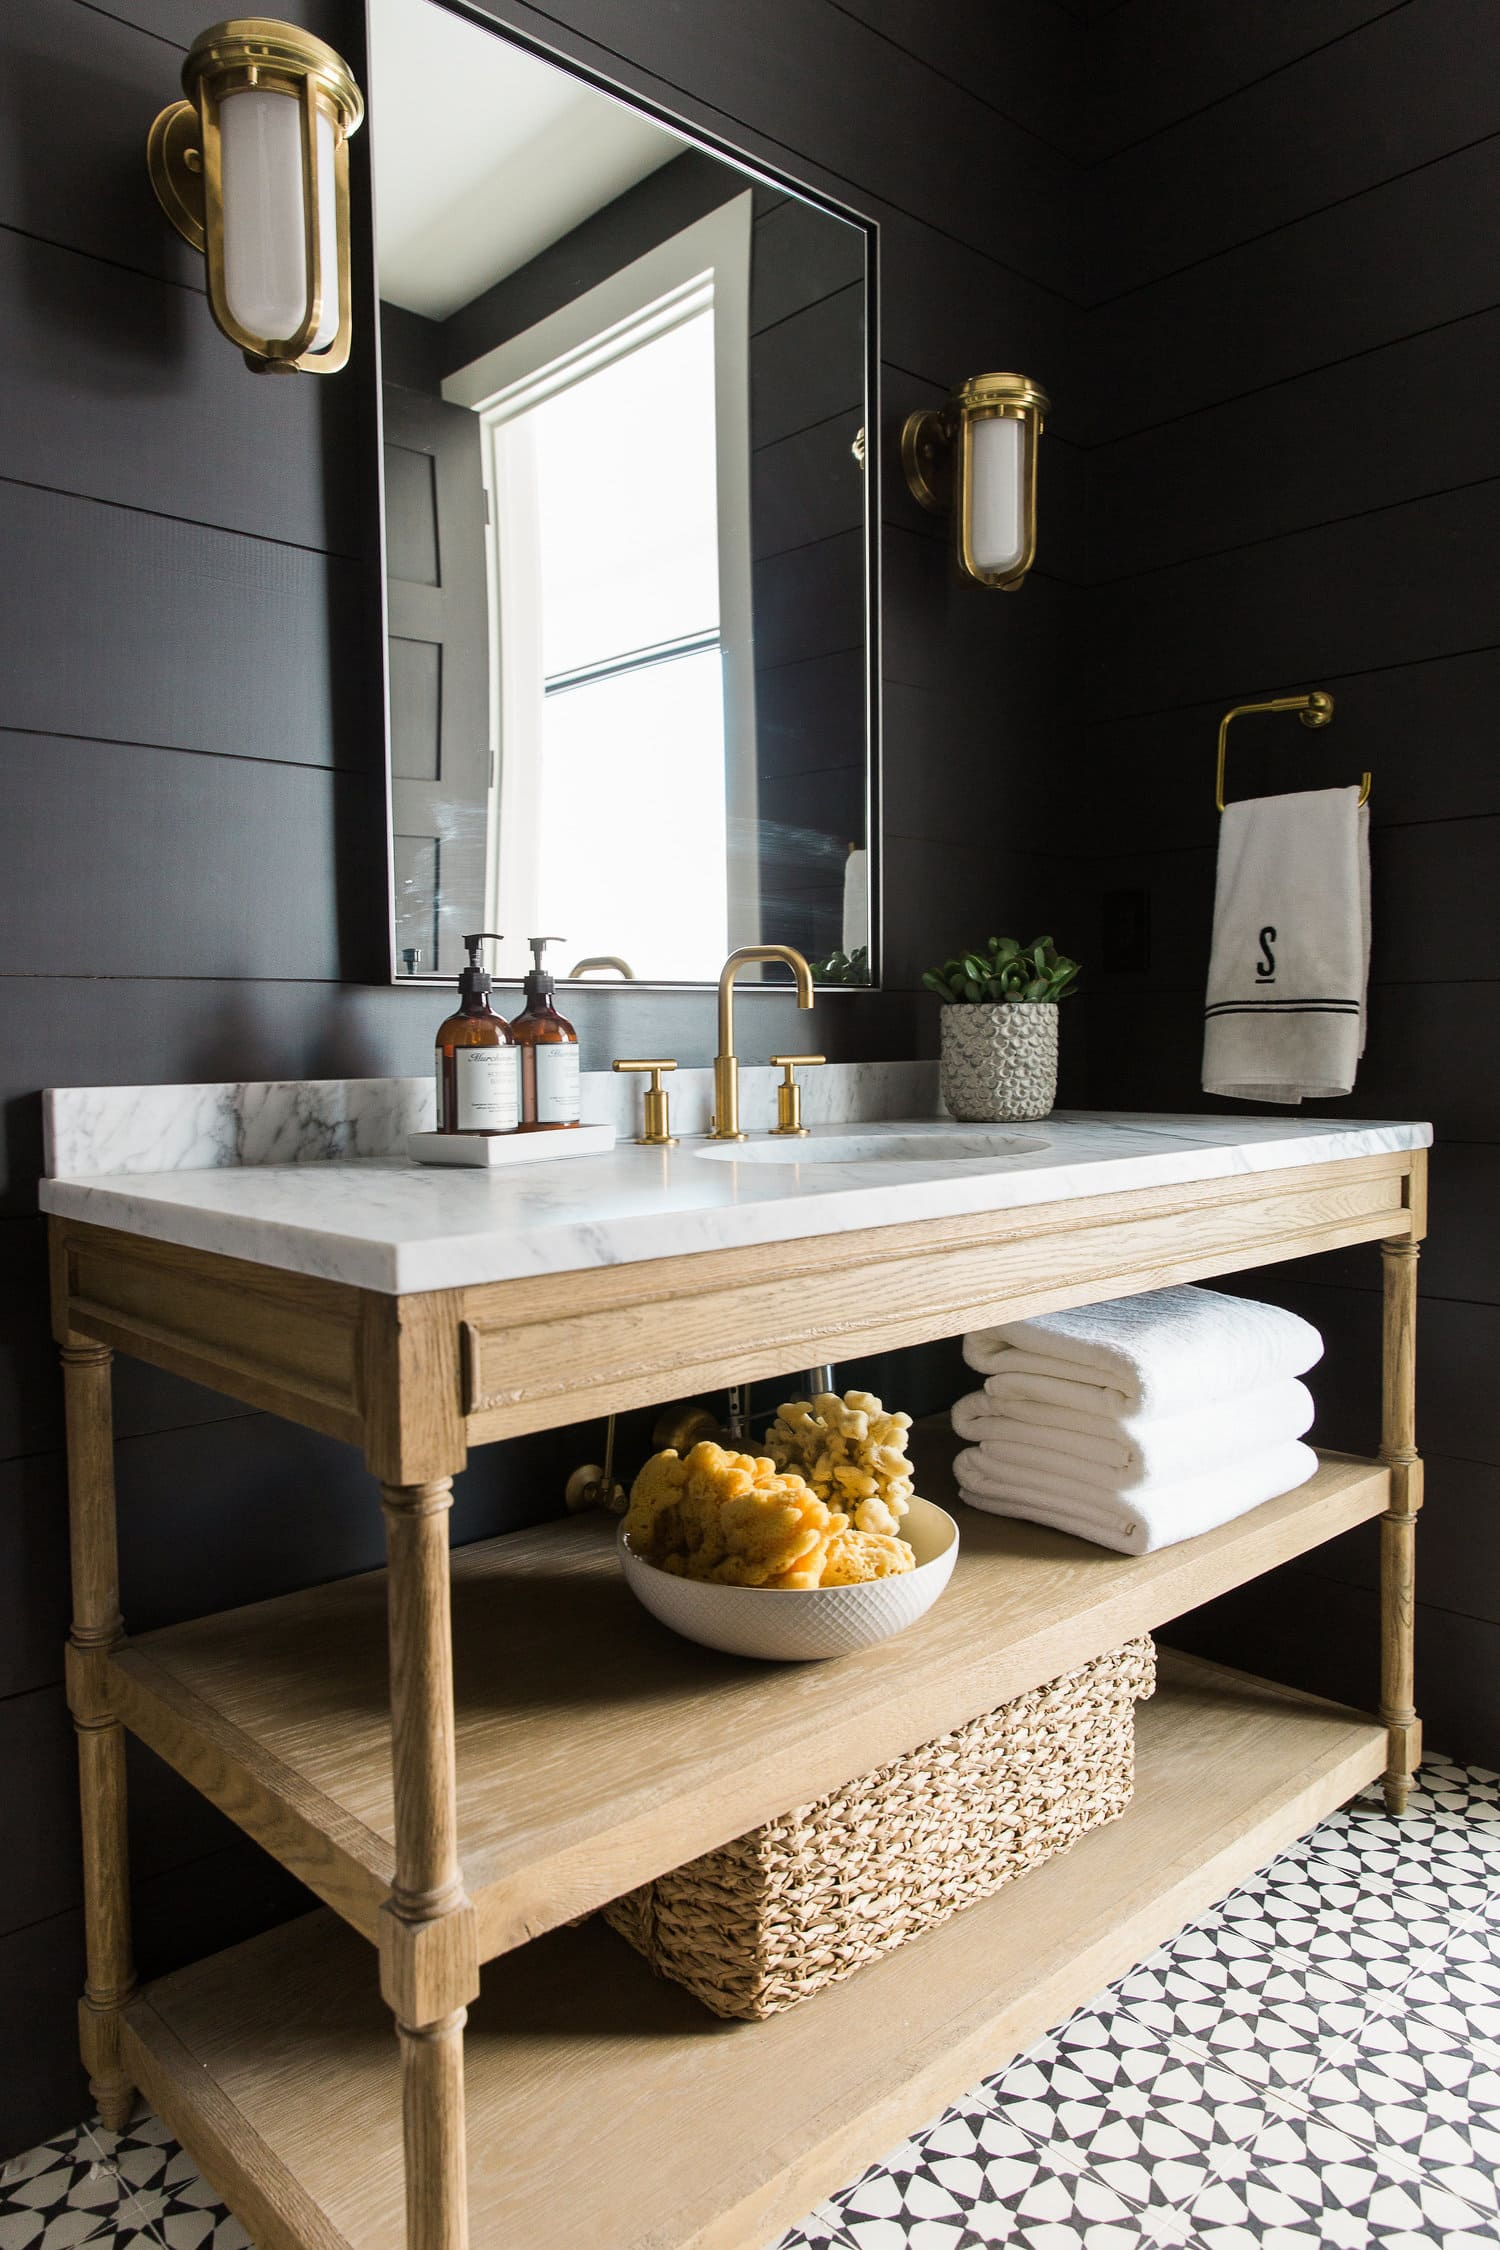 Wood Bathroom Vanity from Studio McGee